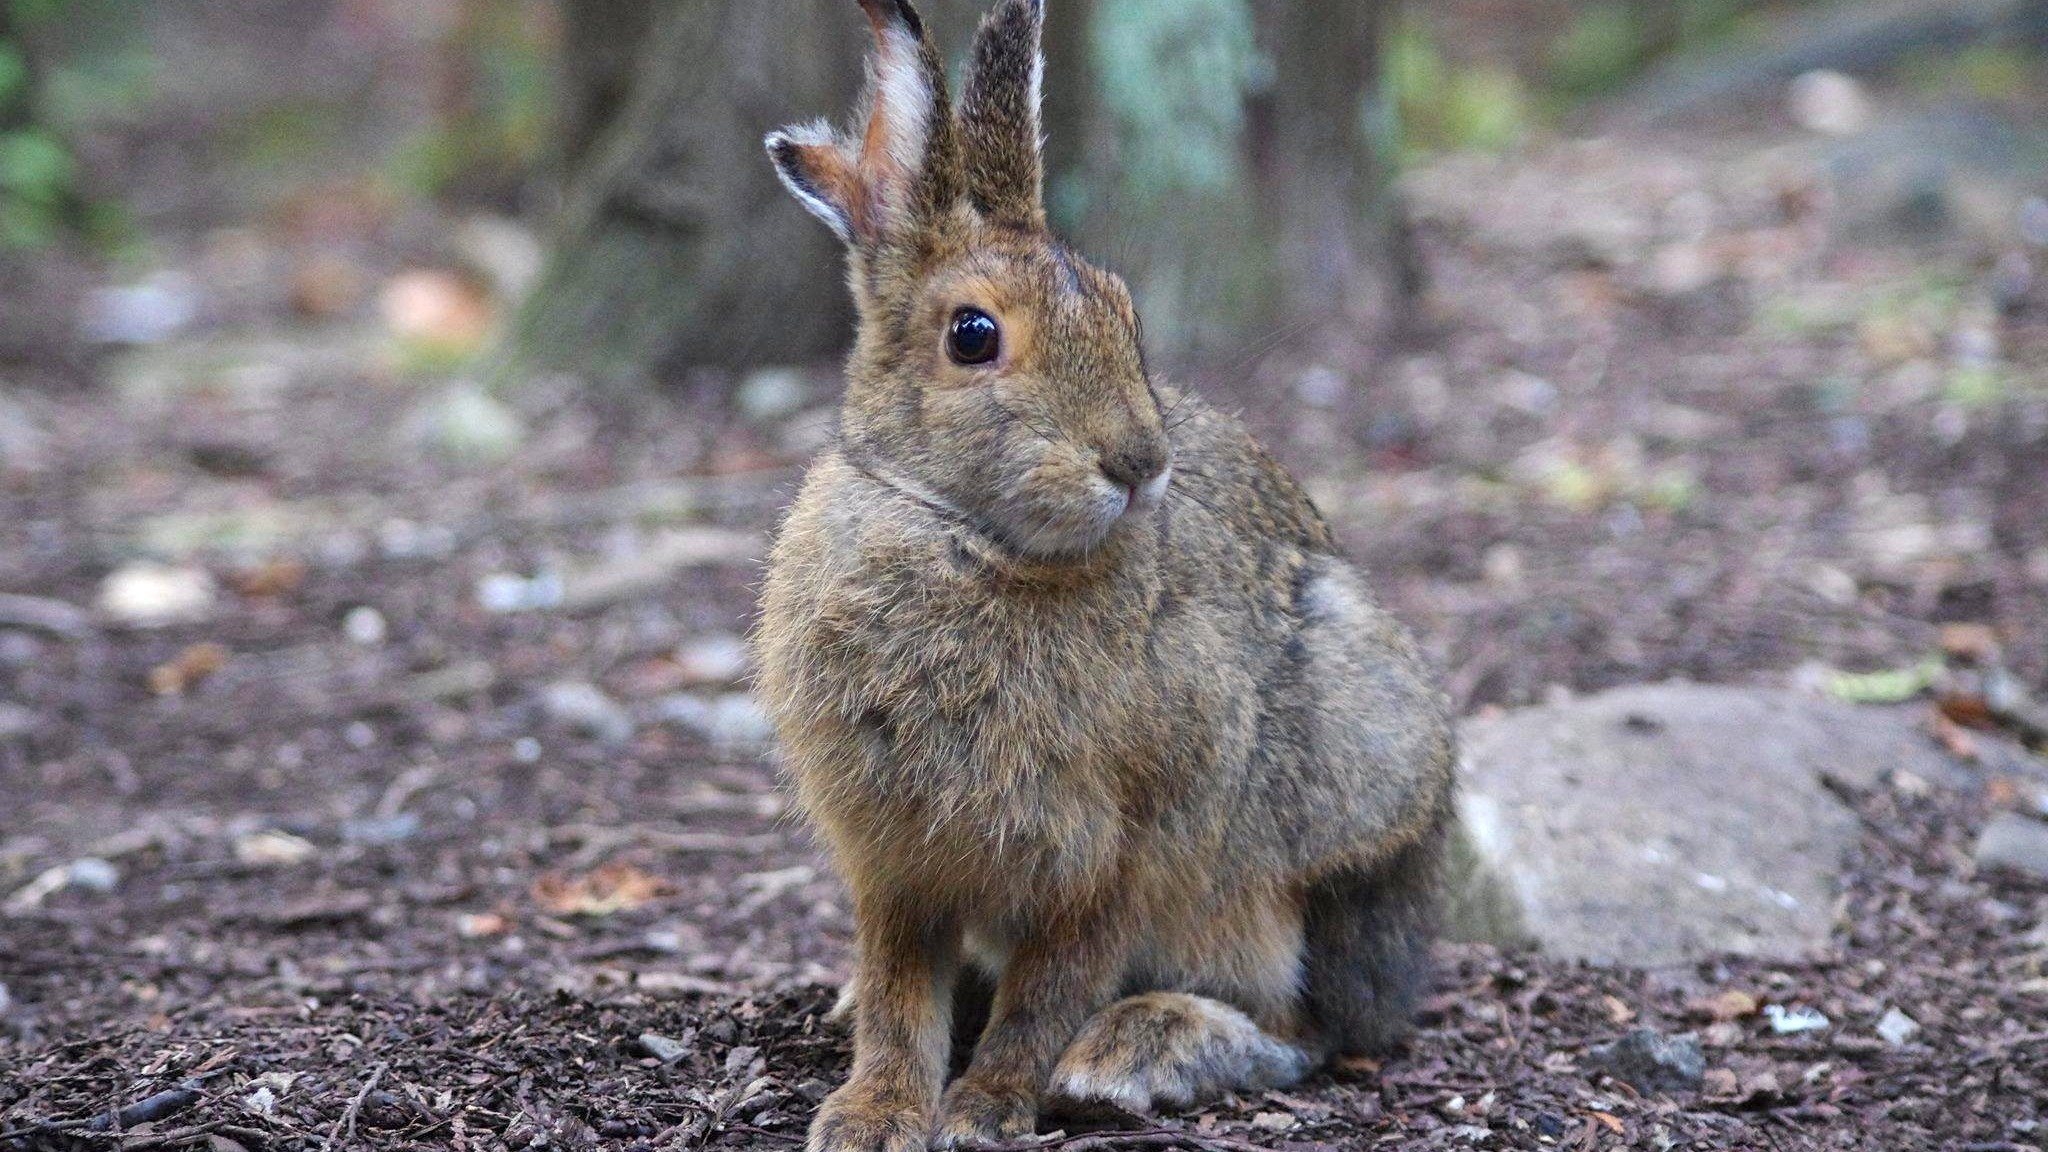 Is This Four-Eared 'Jackalope' Bunny a Nuclear Mutant? We Asked a Park Ranger